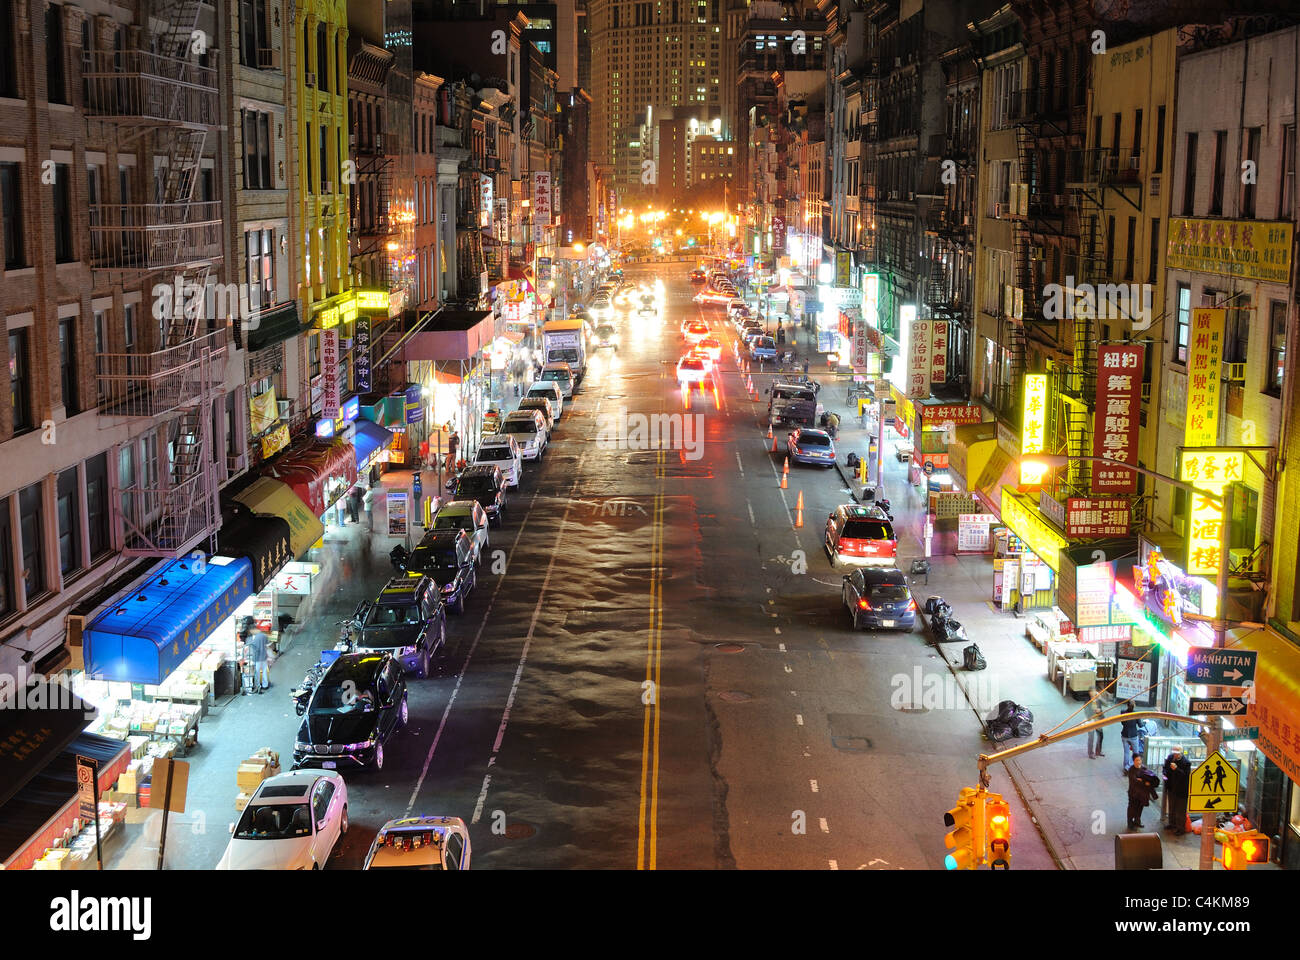 A Commercial Street In Chinatown New York City At Night October Stock Photo Alamy